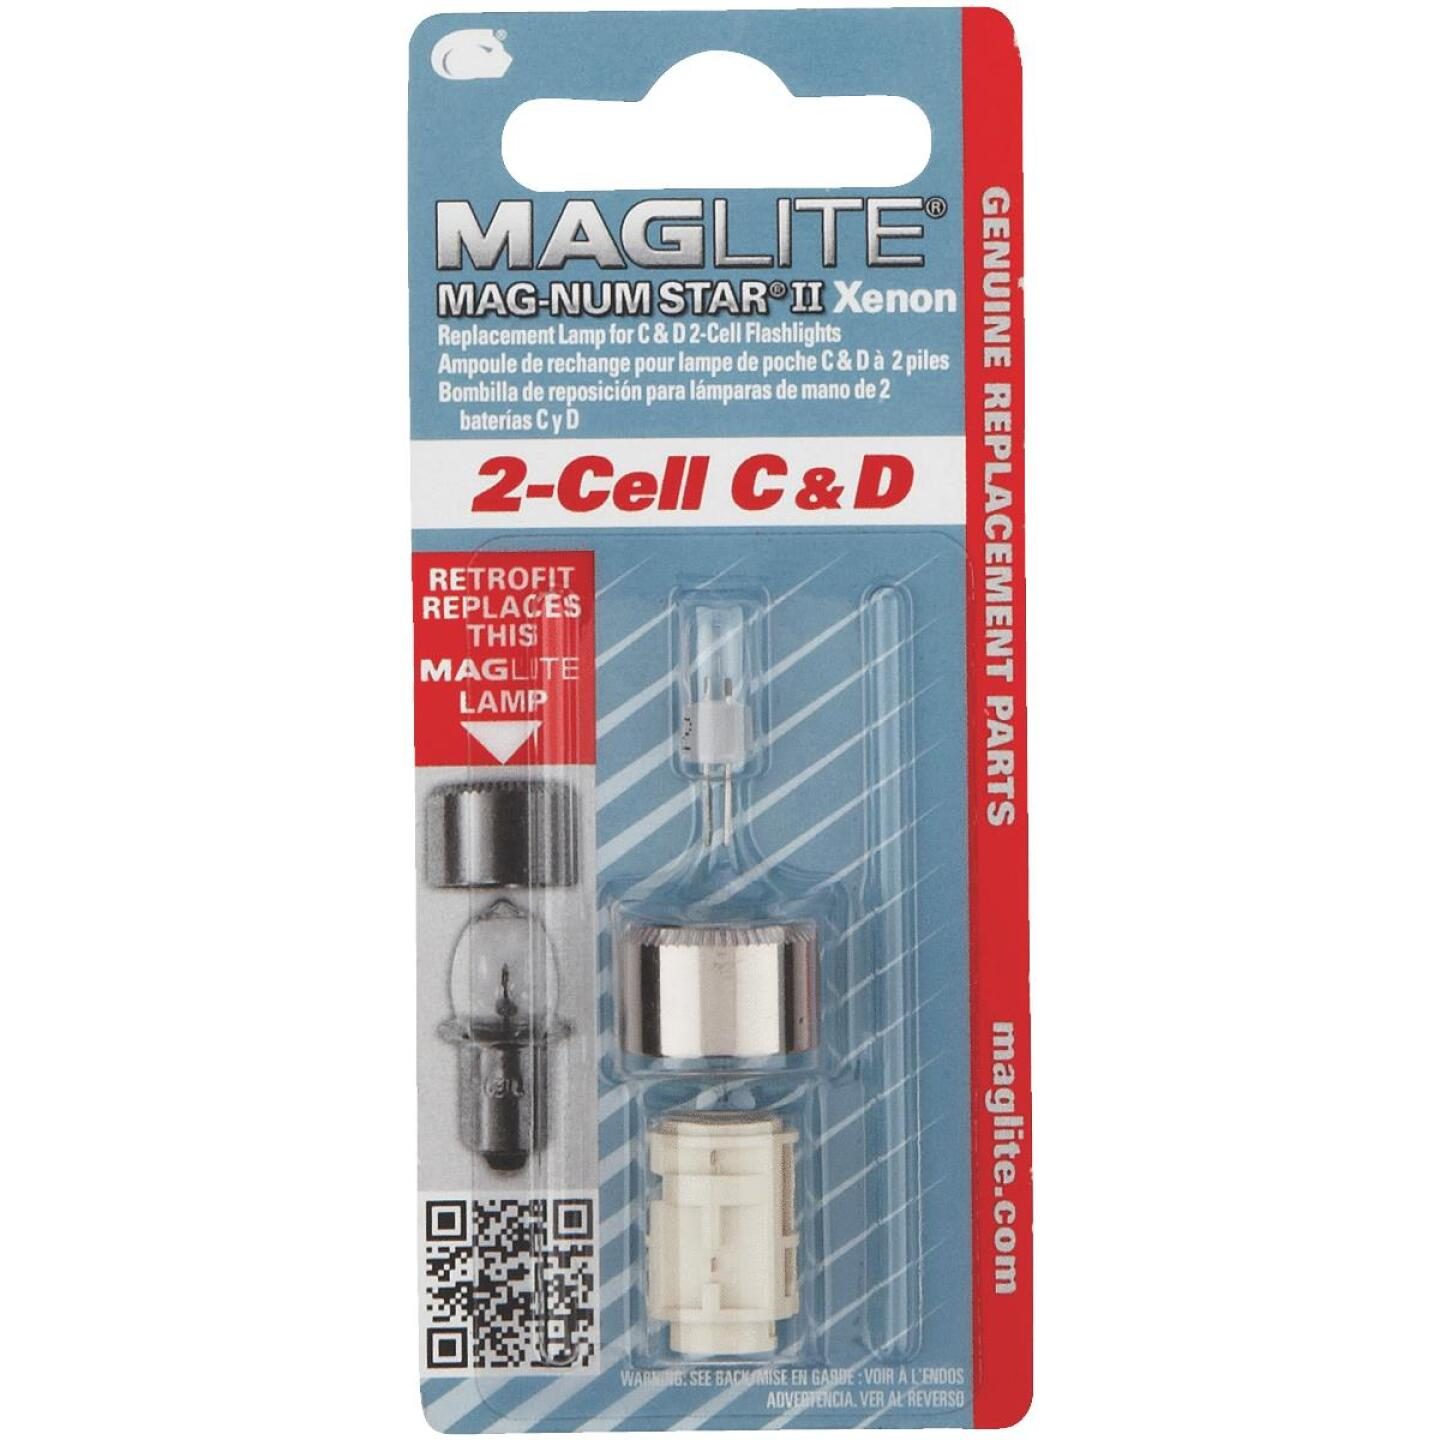 Maglite Xenon 3V Replacement Flashlight Bulb Image 1